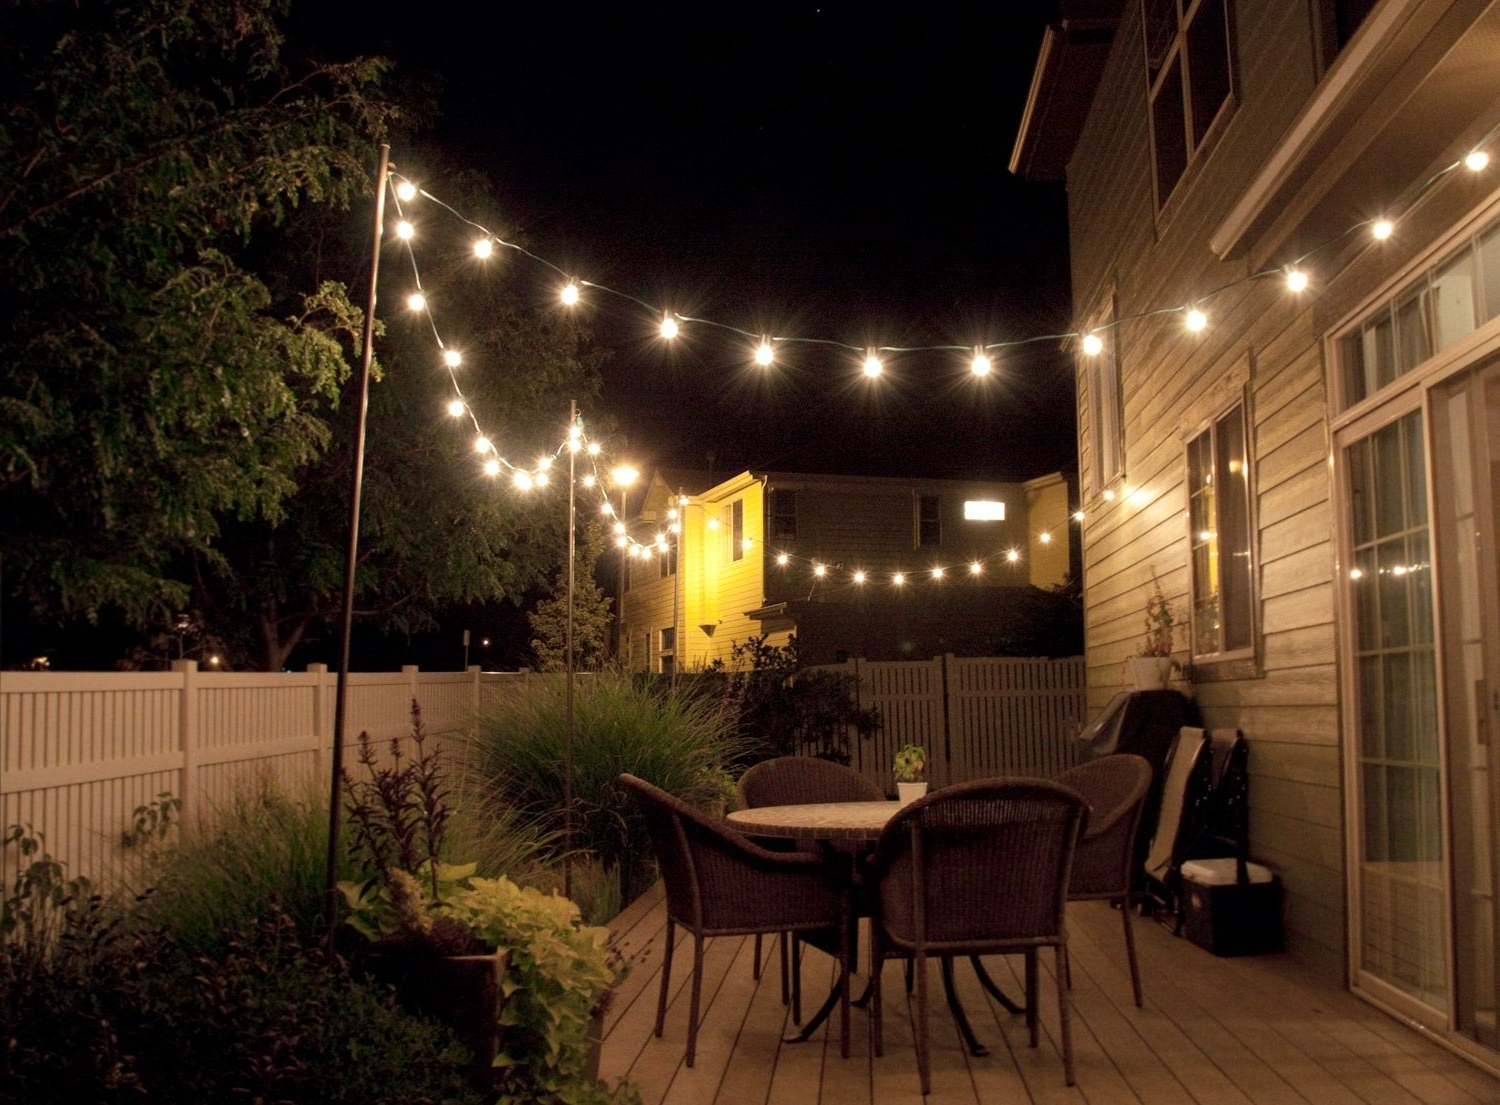 How To Make Inexpensive Poles To Hang String Lights On – Café Style In Preferred Hanging Outdoor Rope Lights (Gallery 1 of 20)